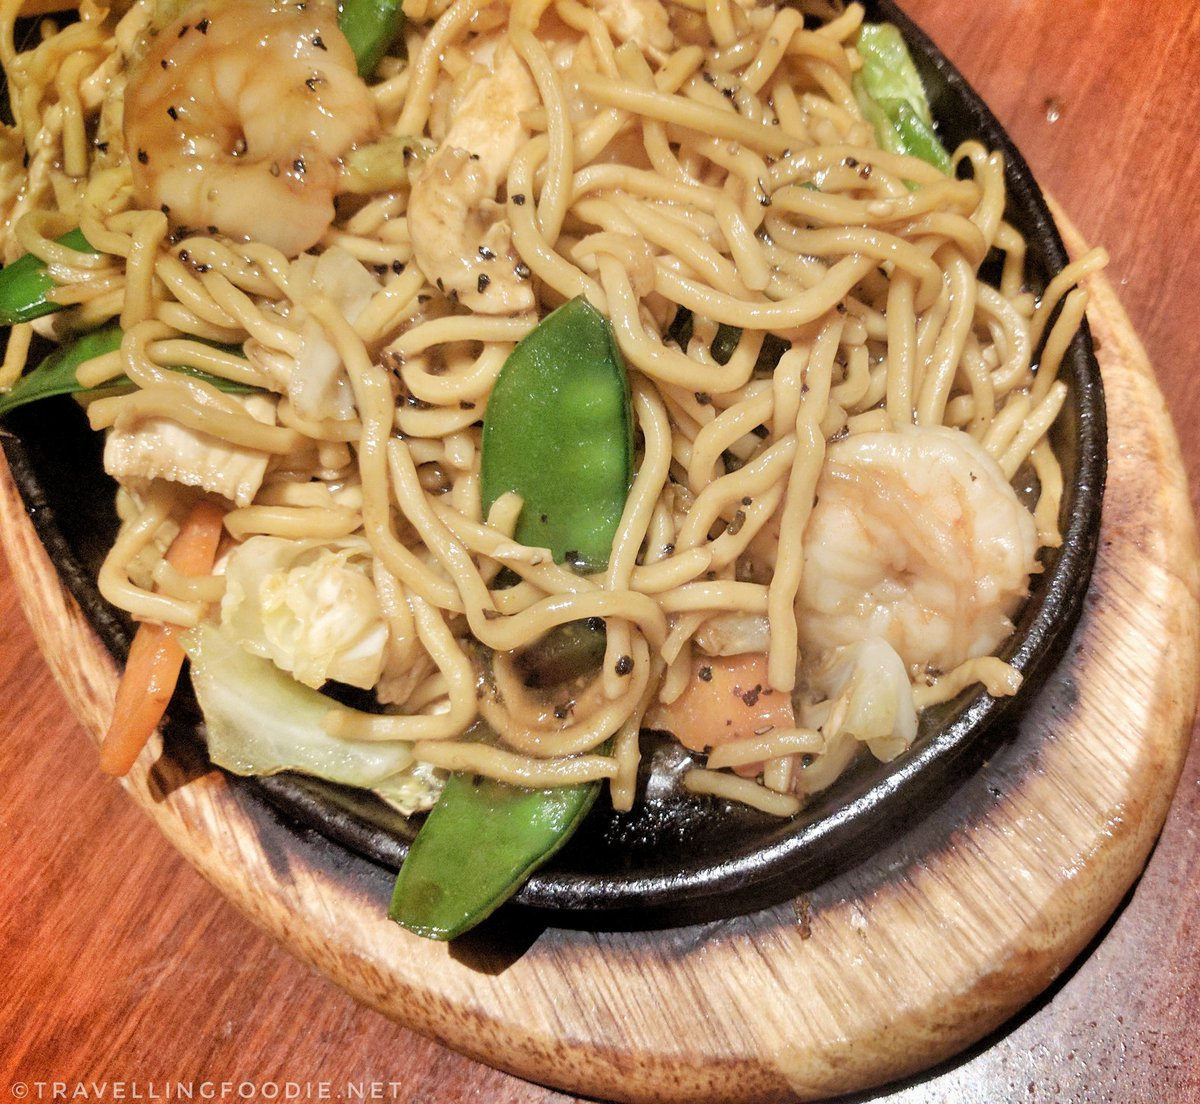 Travelling Foodie Eats Sizzling Pan Fried Noodle at Dragon Noodle Co in Monte Carlo Las Vegas Nevada